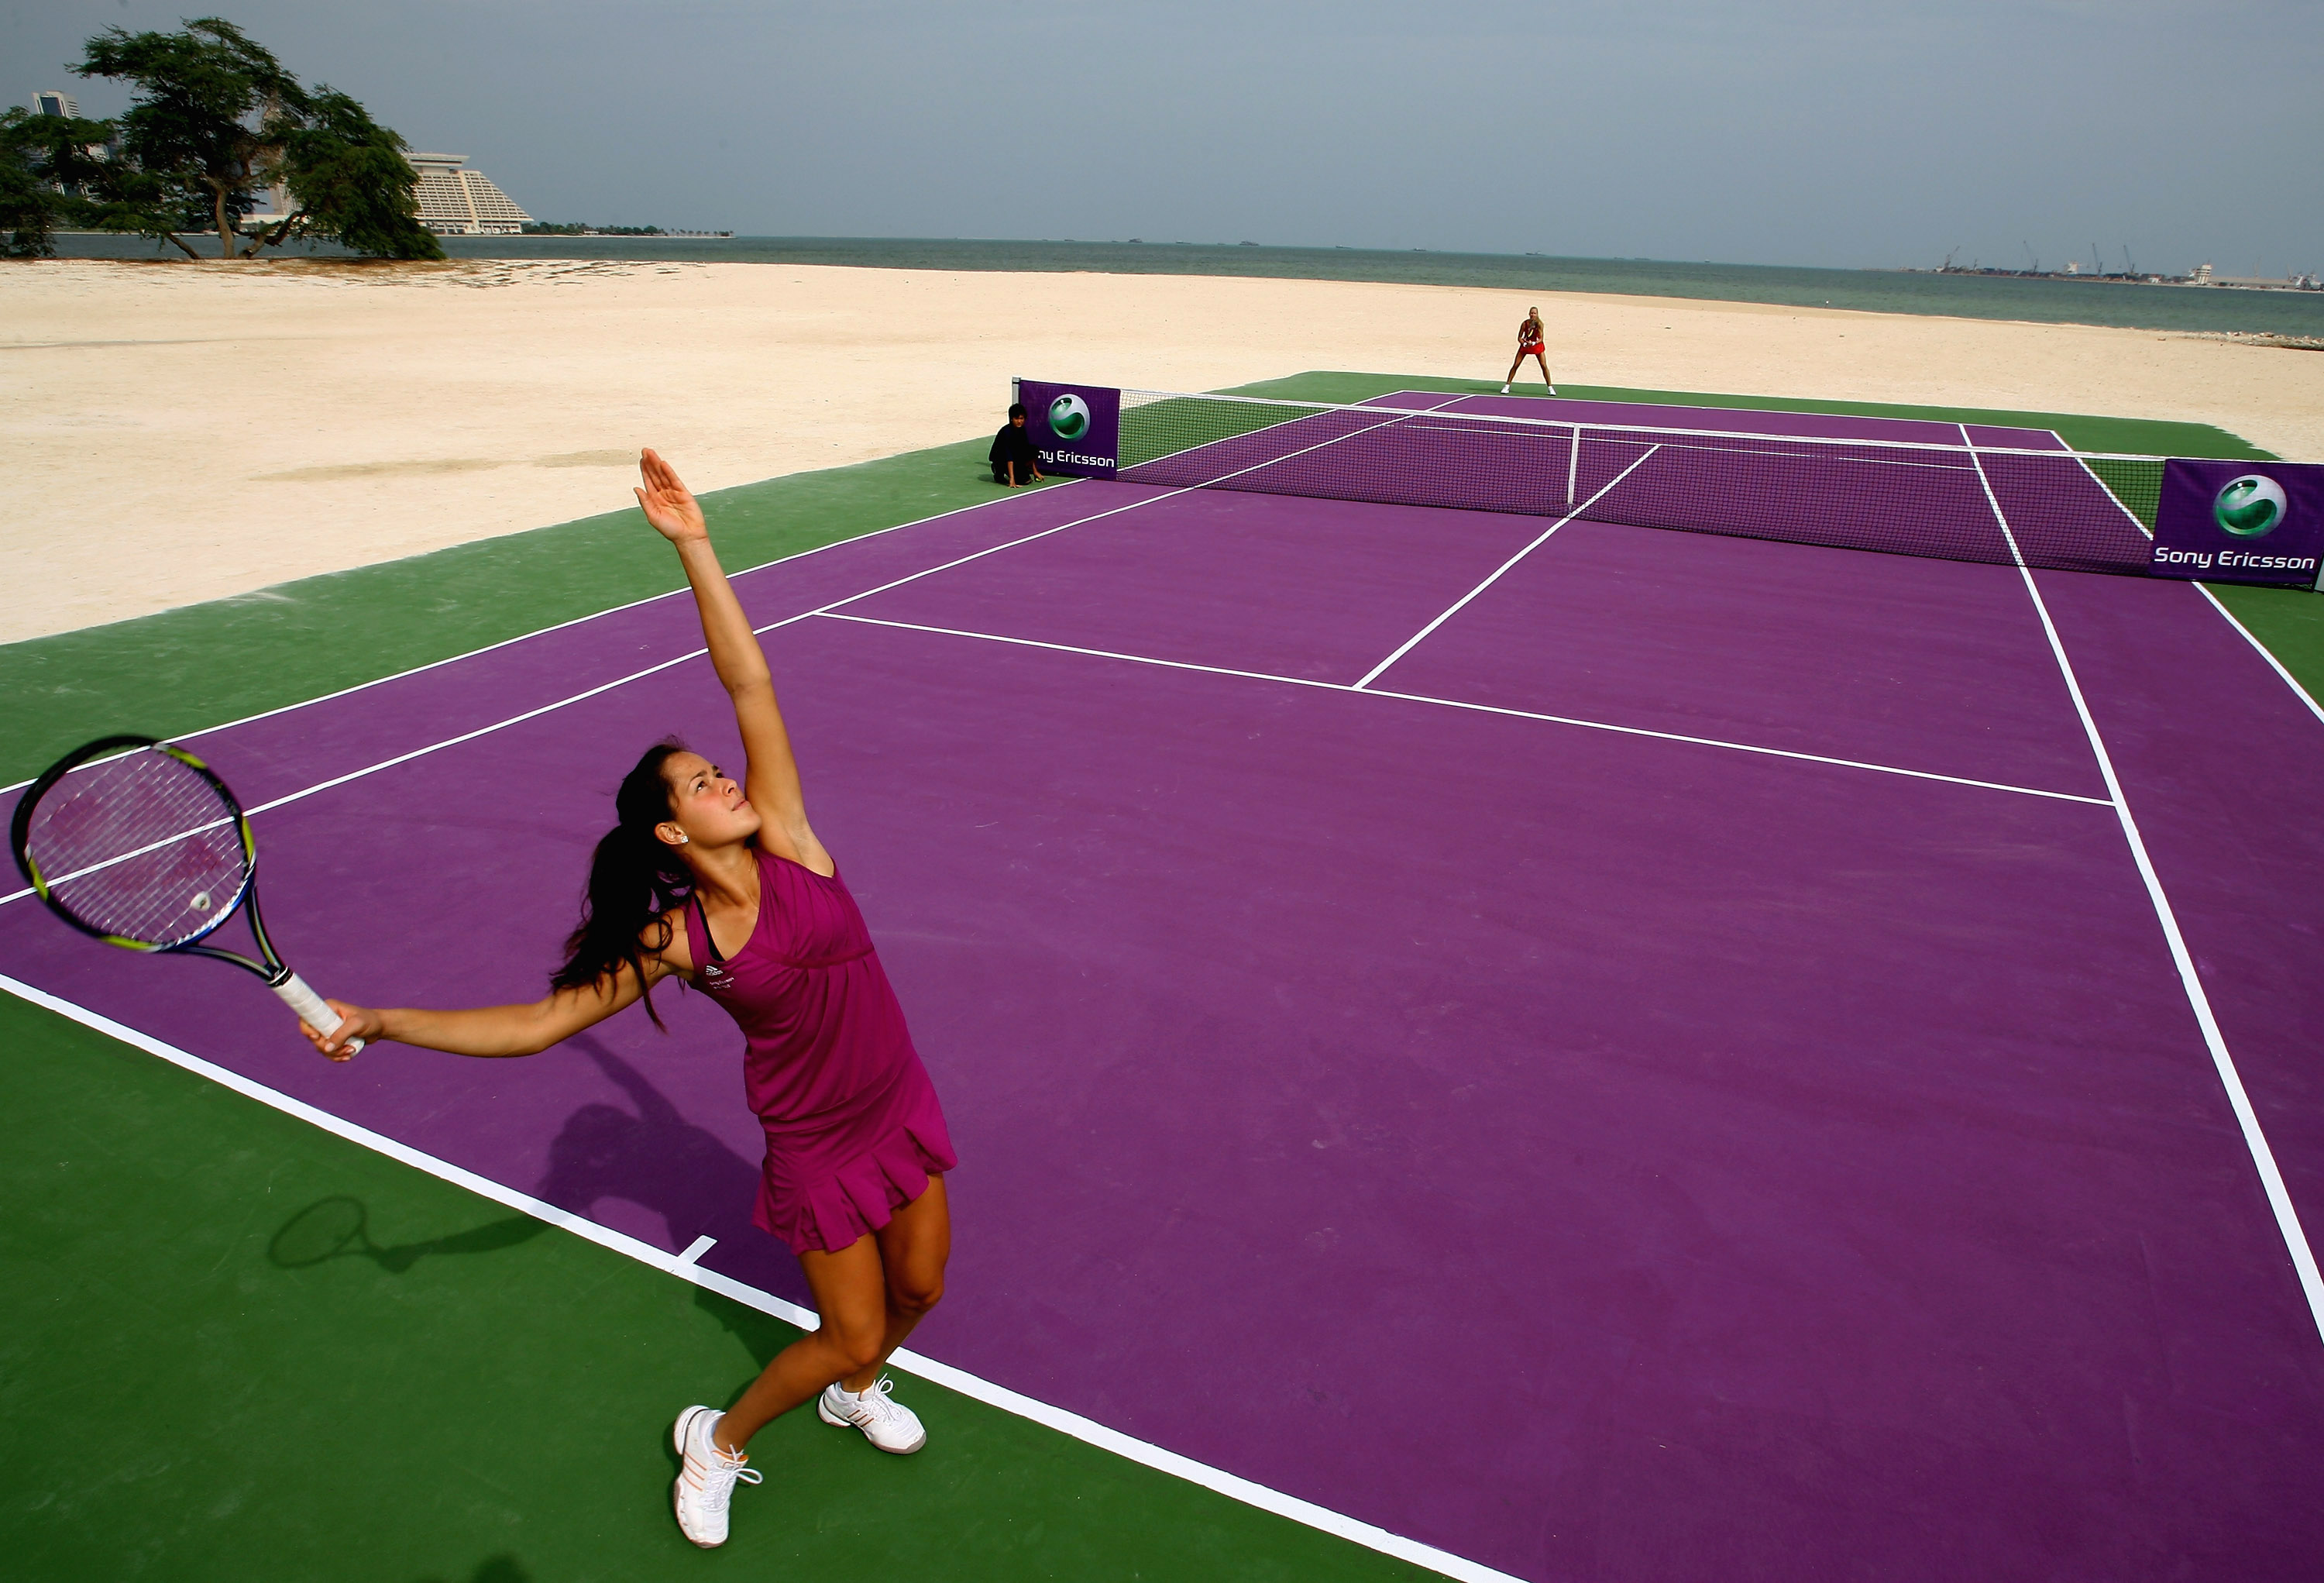 The tournament moves to Doha, Qatar for three years.